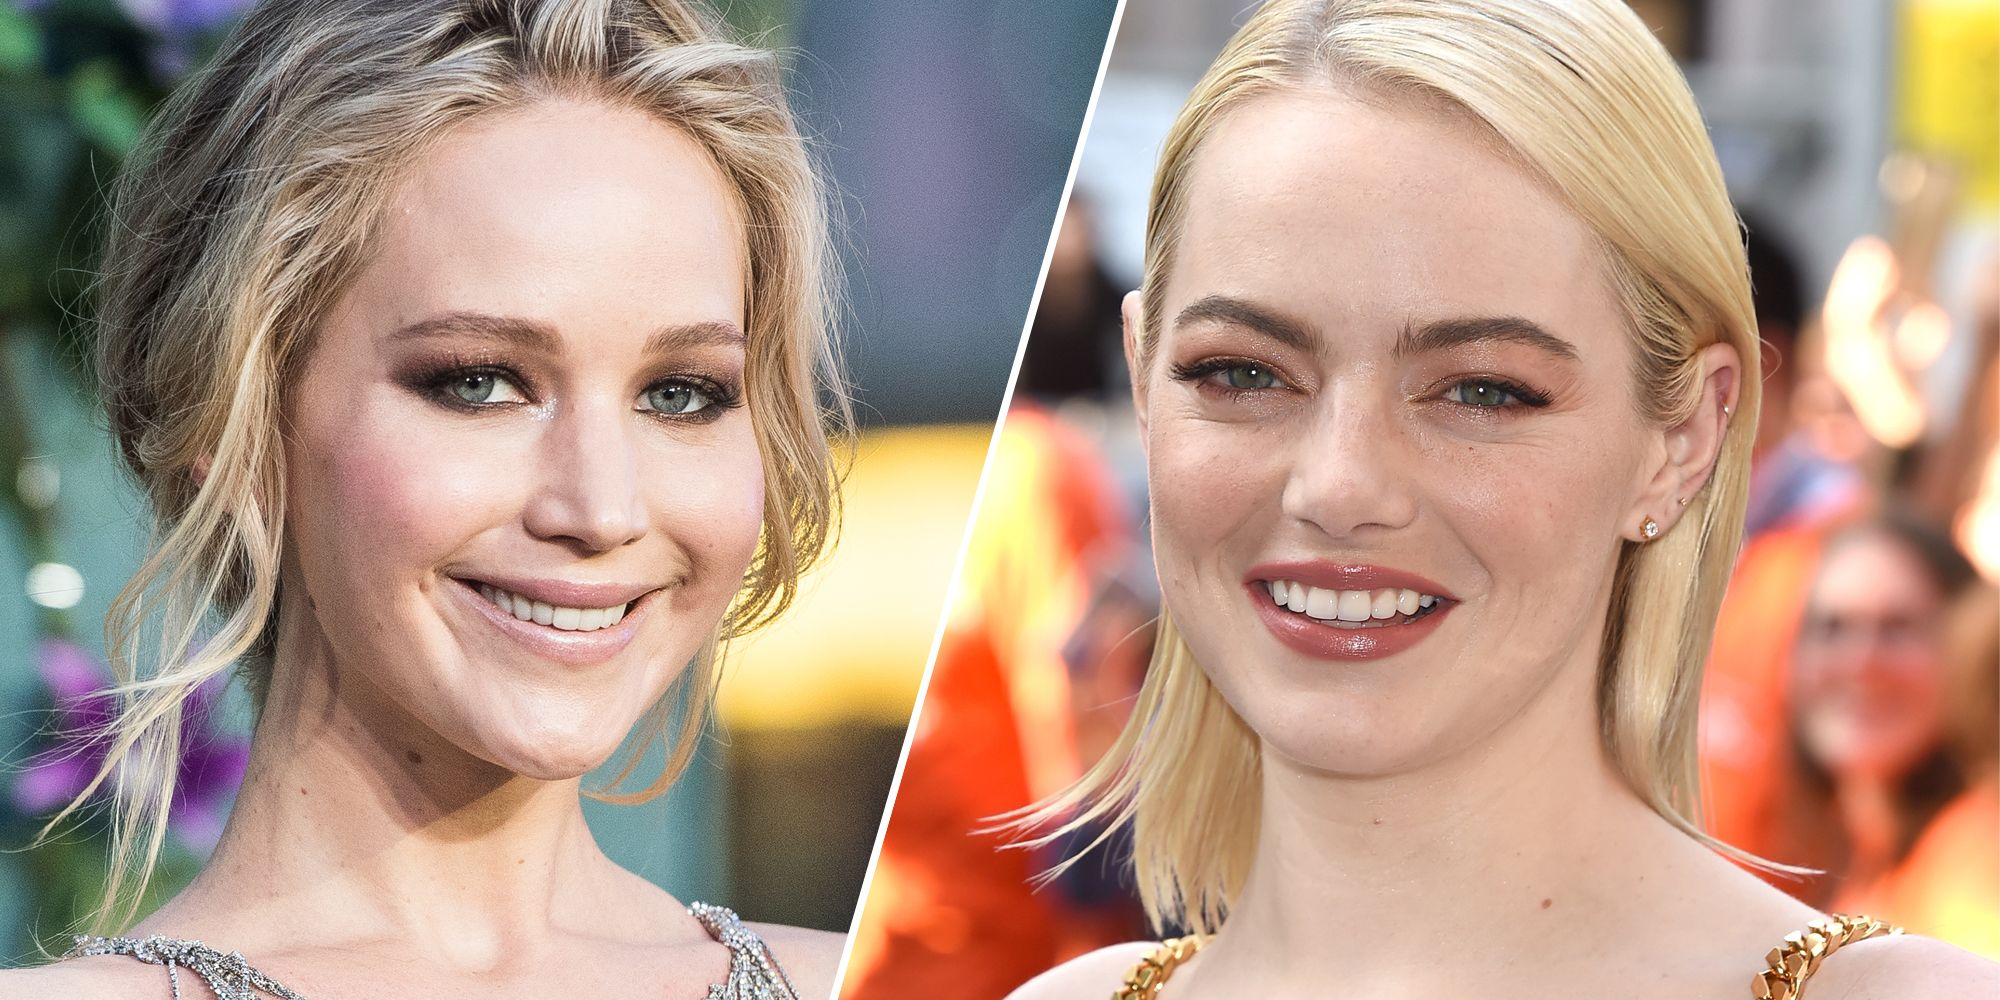 Jennifer Lawrence and Emma Stone